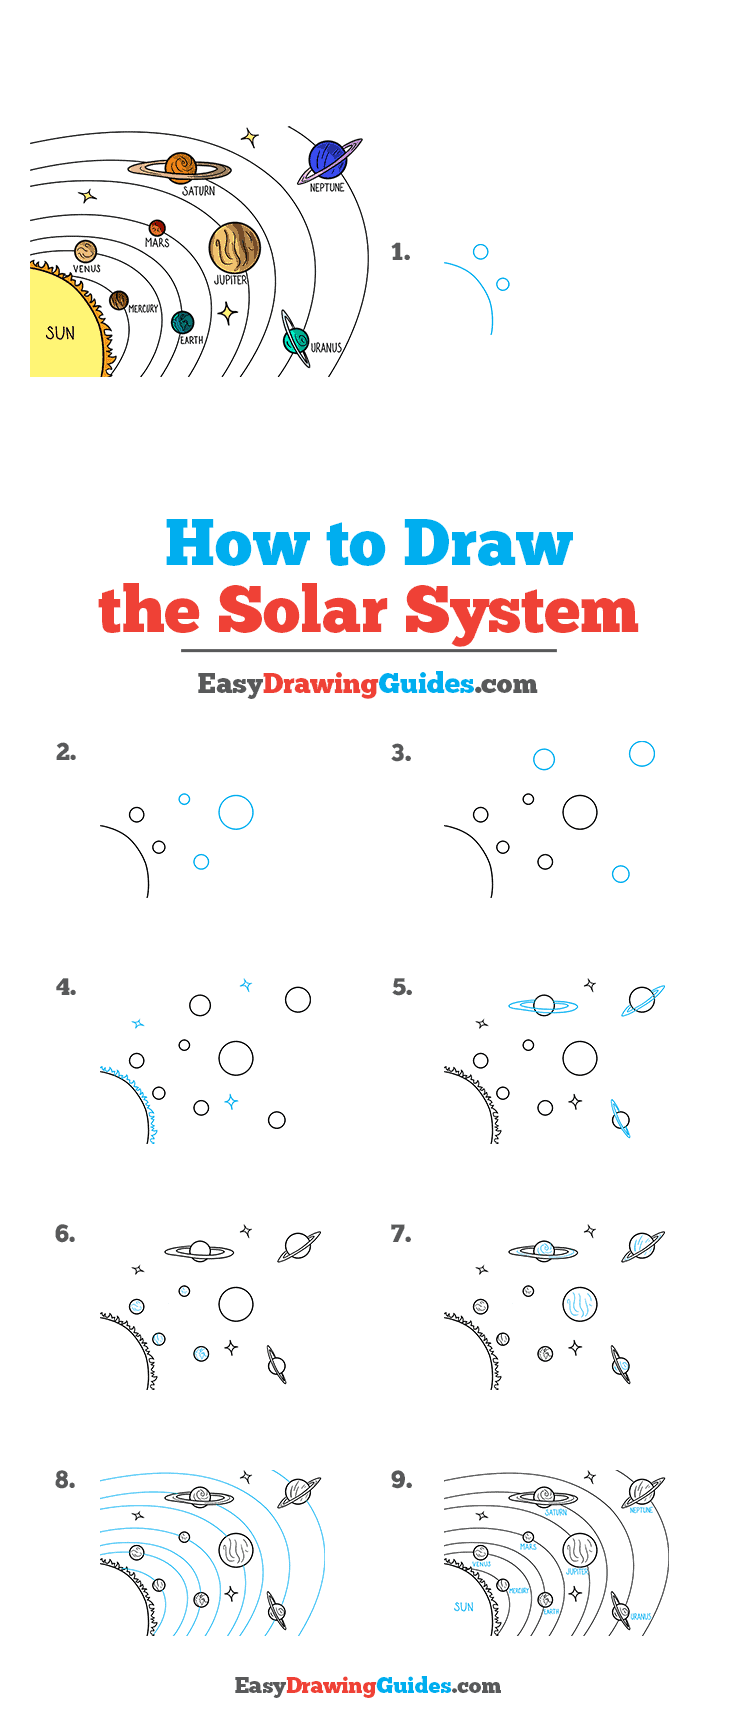 How to Draw the Solar System Step by Step Tutorial Image